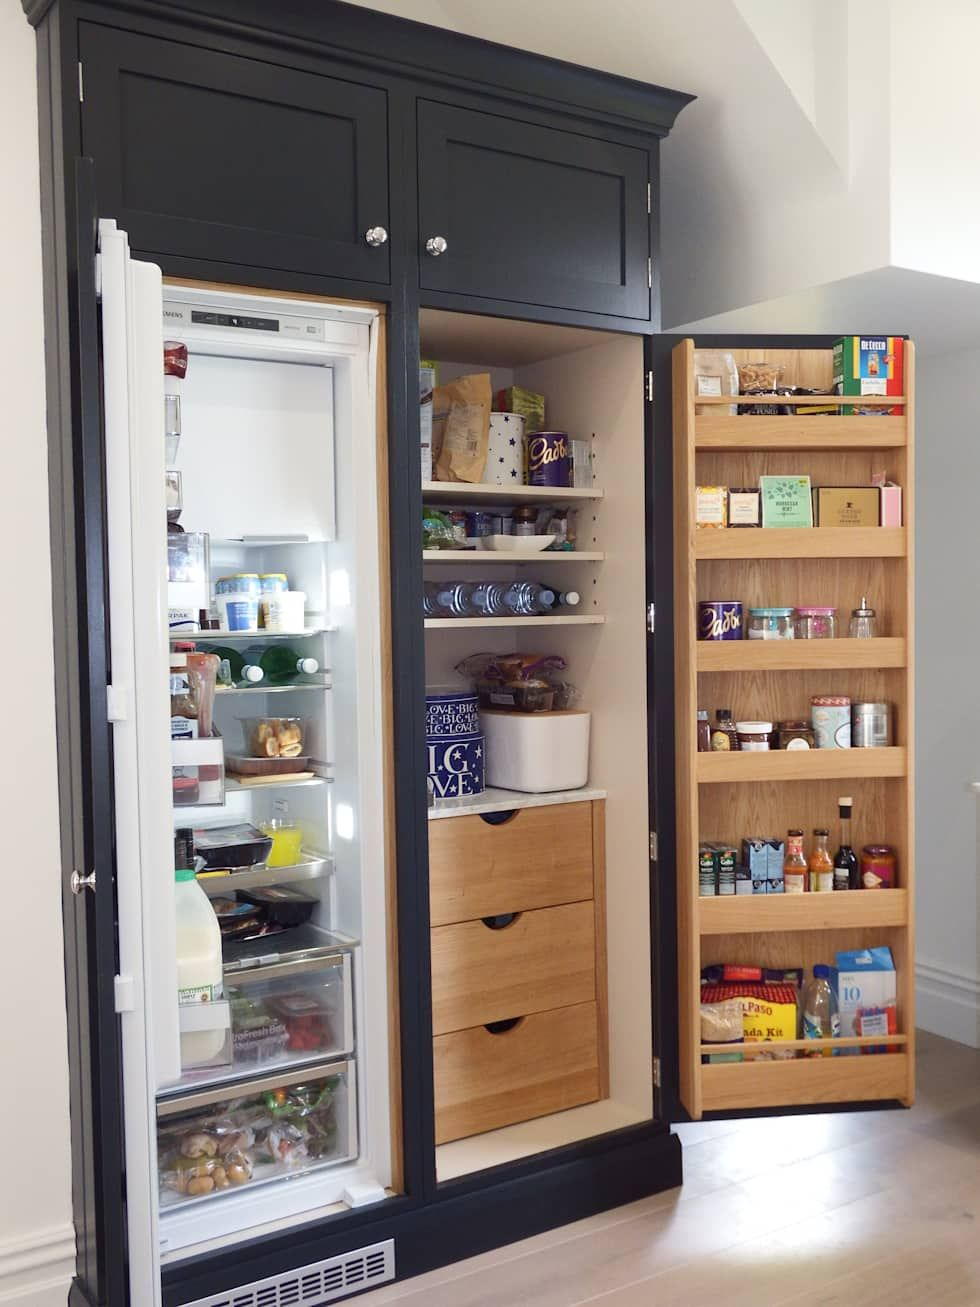 Pantry cabinet with fridge: kitchen by inglish design, modern #pantrycabinet